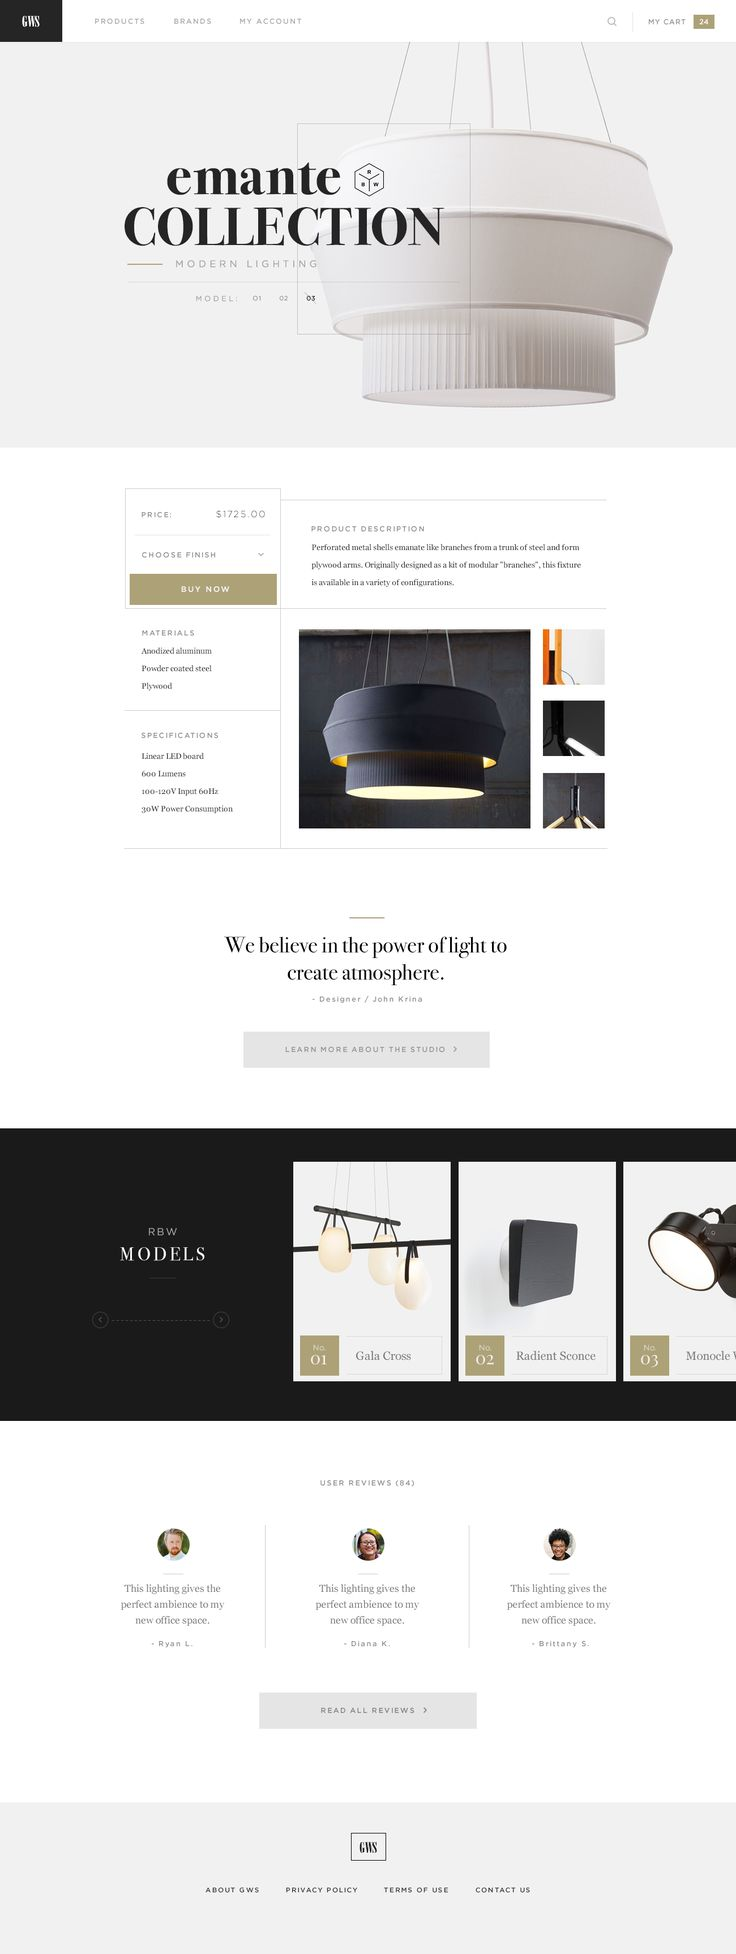 GWS design interior ecommerce website #website #webdesign #design #web #interior #ecommerce